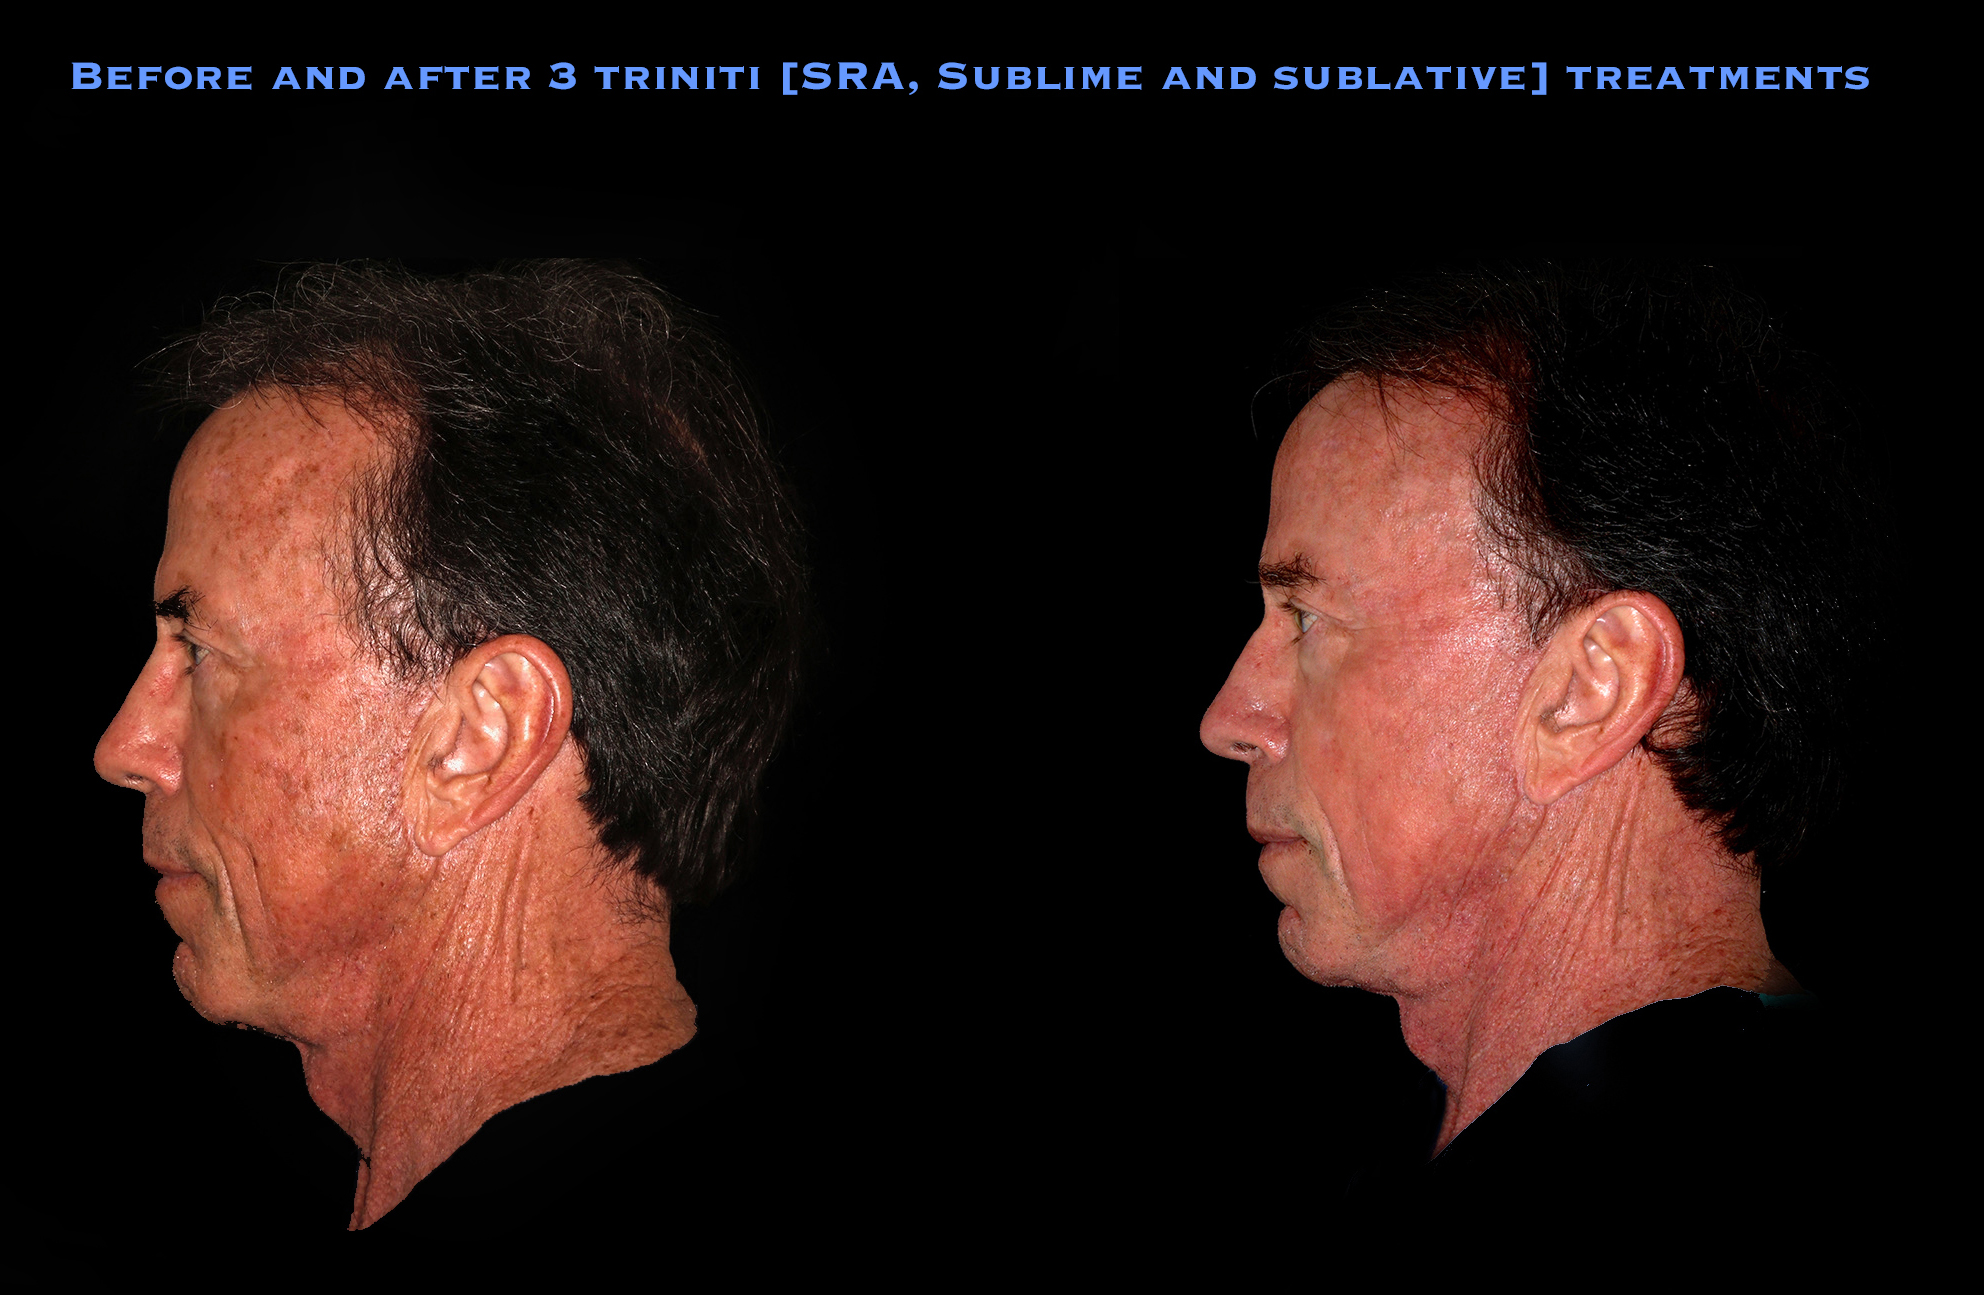 Before and After 3 elos Treatments of Trinity Treatment (Sublime, SRA, and Sublative) at Mooney and Berry Gynecologists in Hammond, LA